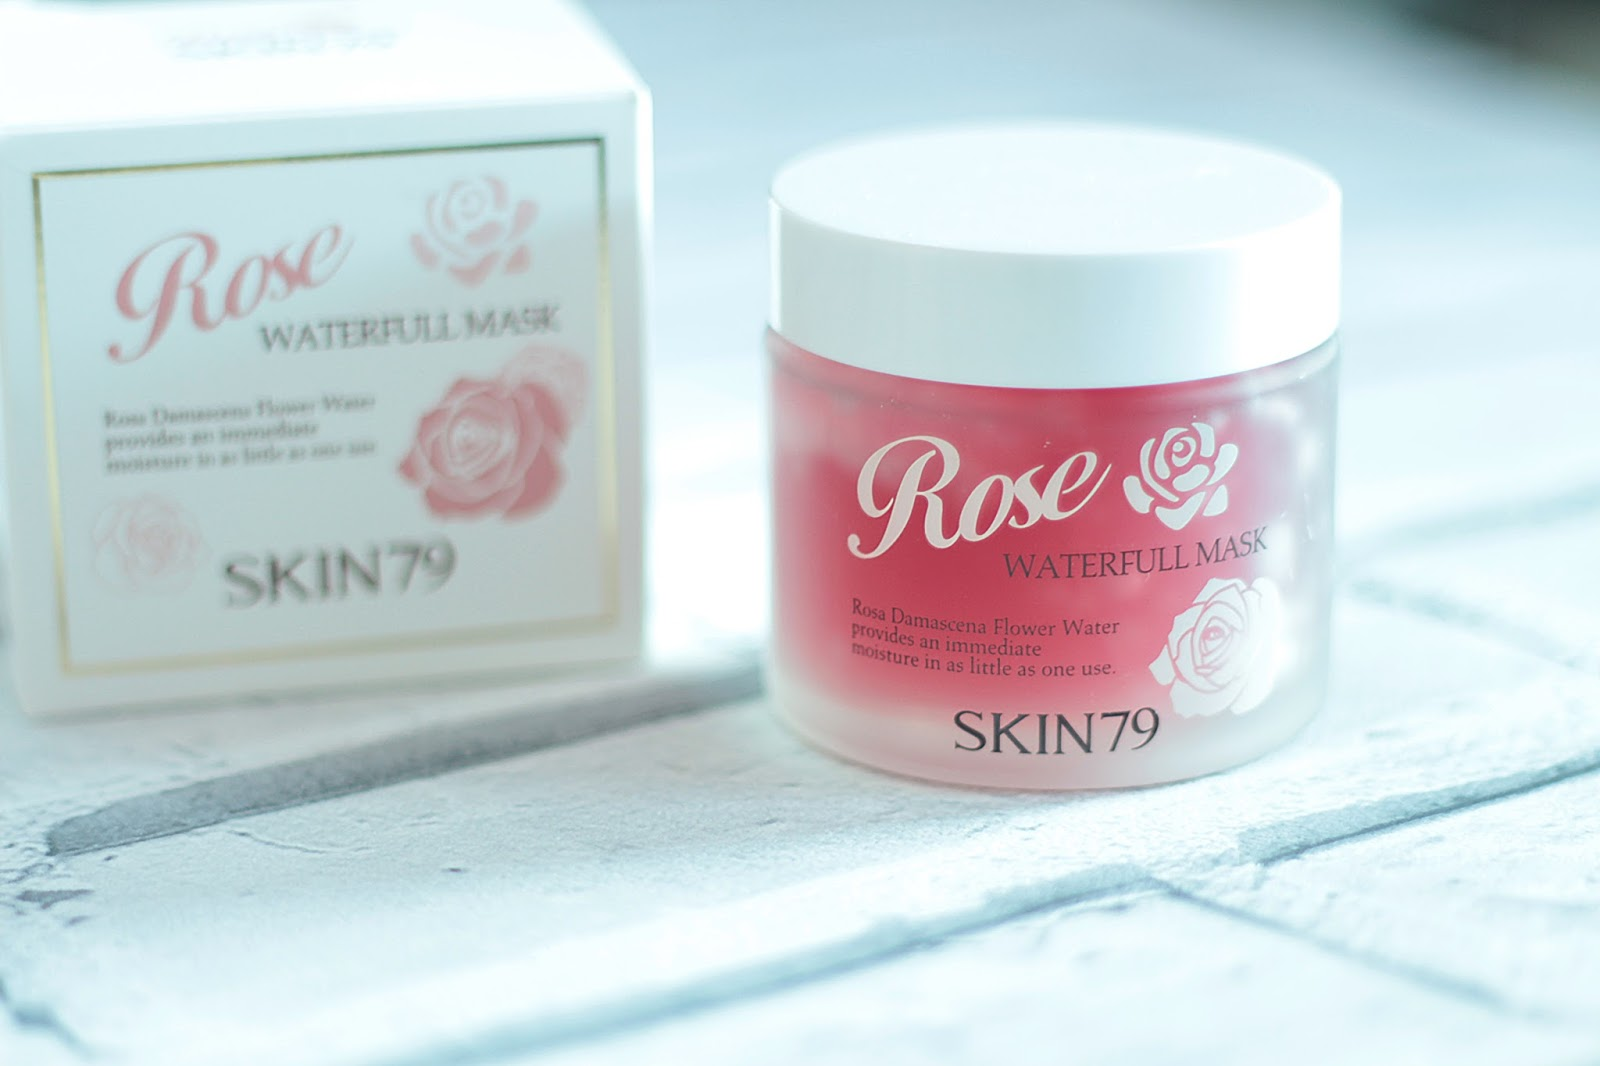 skin79 rose waterful mask product shot